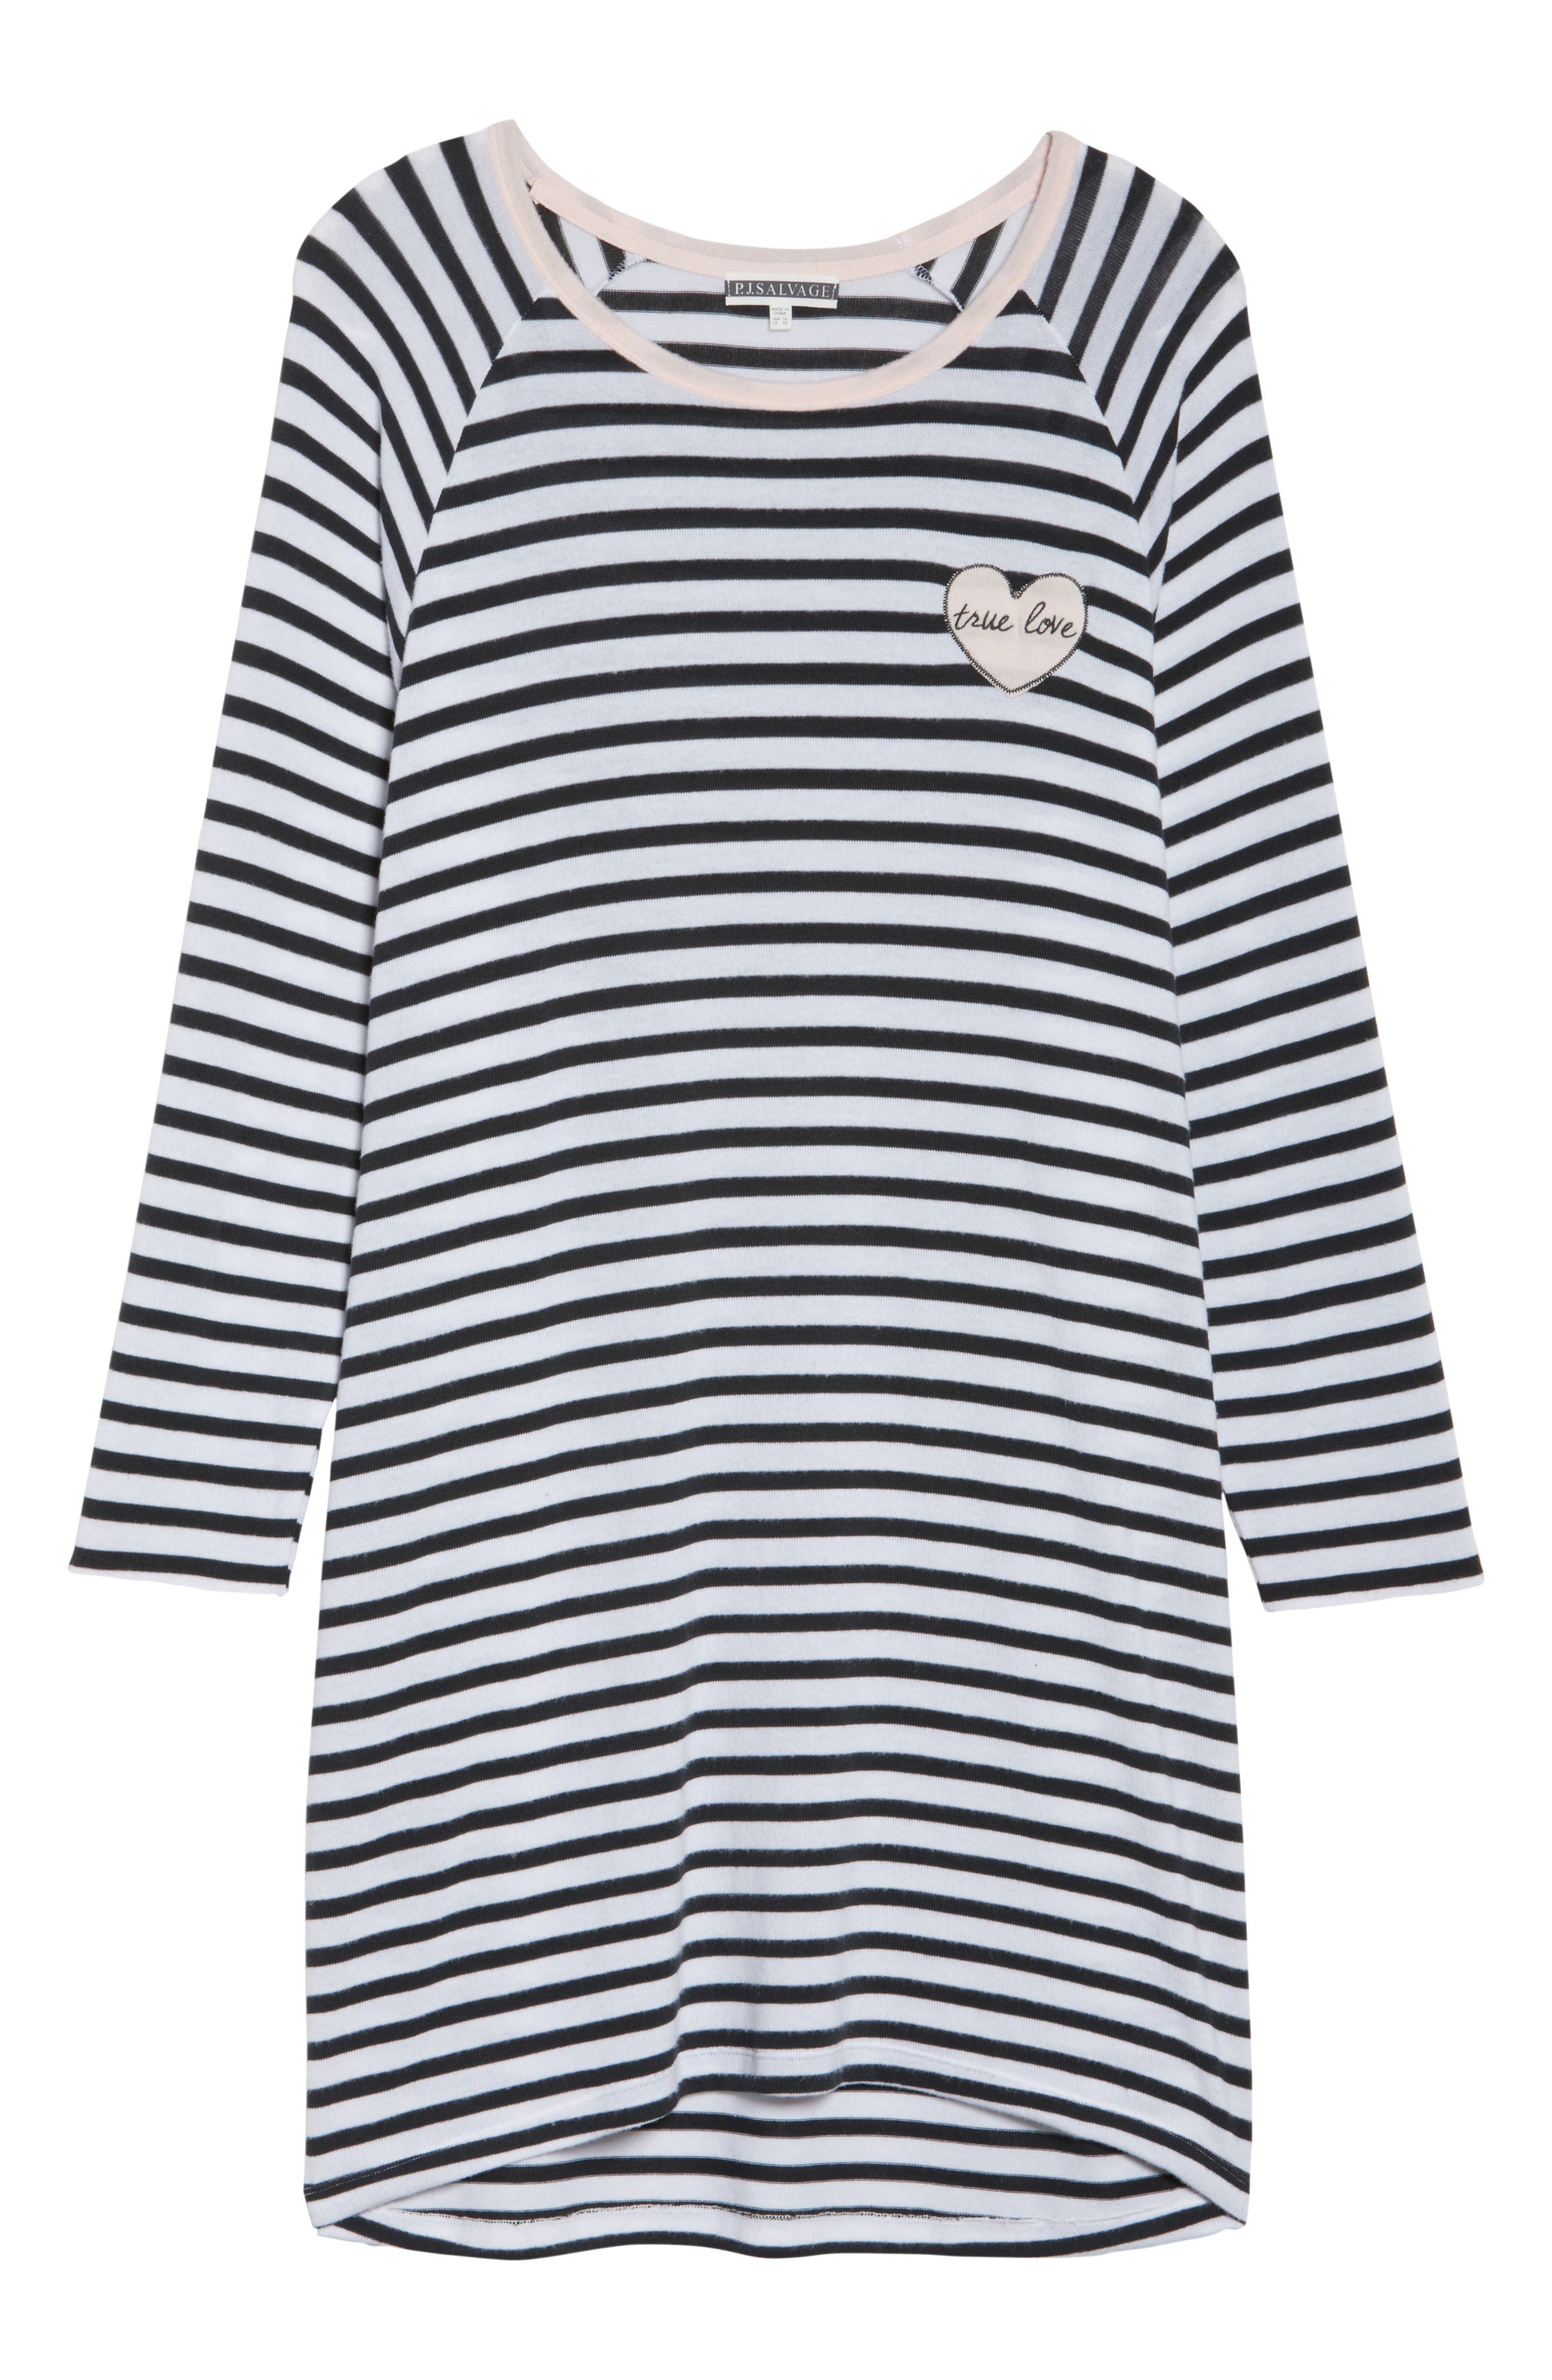 Stripe Peachy Jersey Nightshirt,                             Alternate thumbnail 6, color,                             900